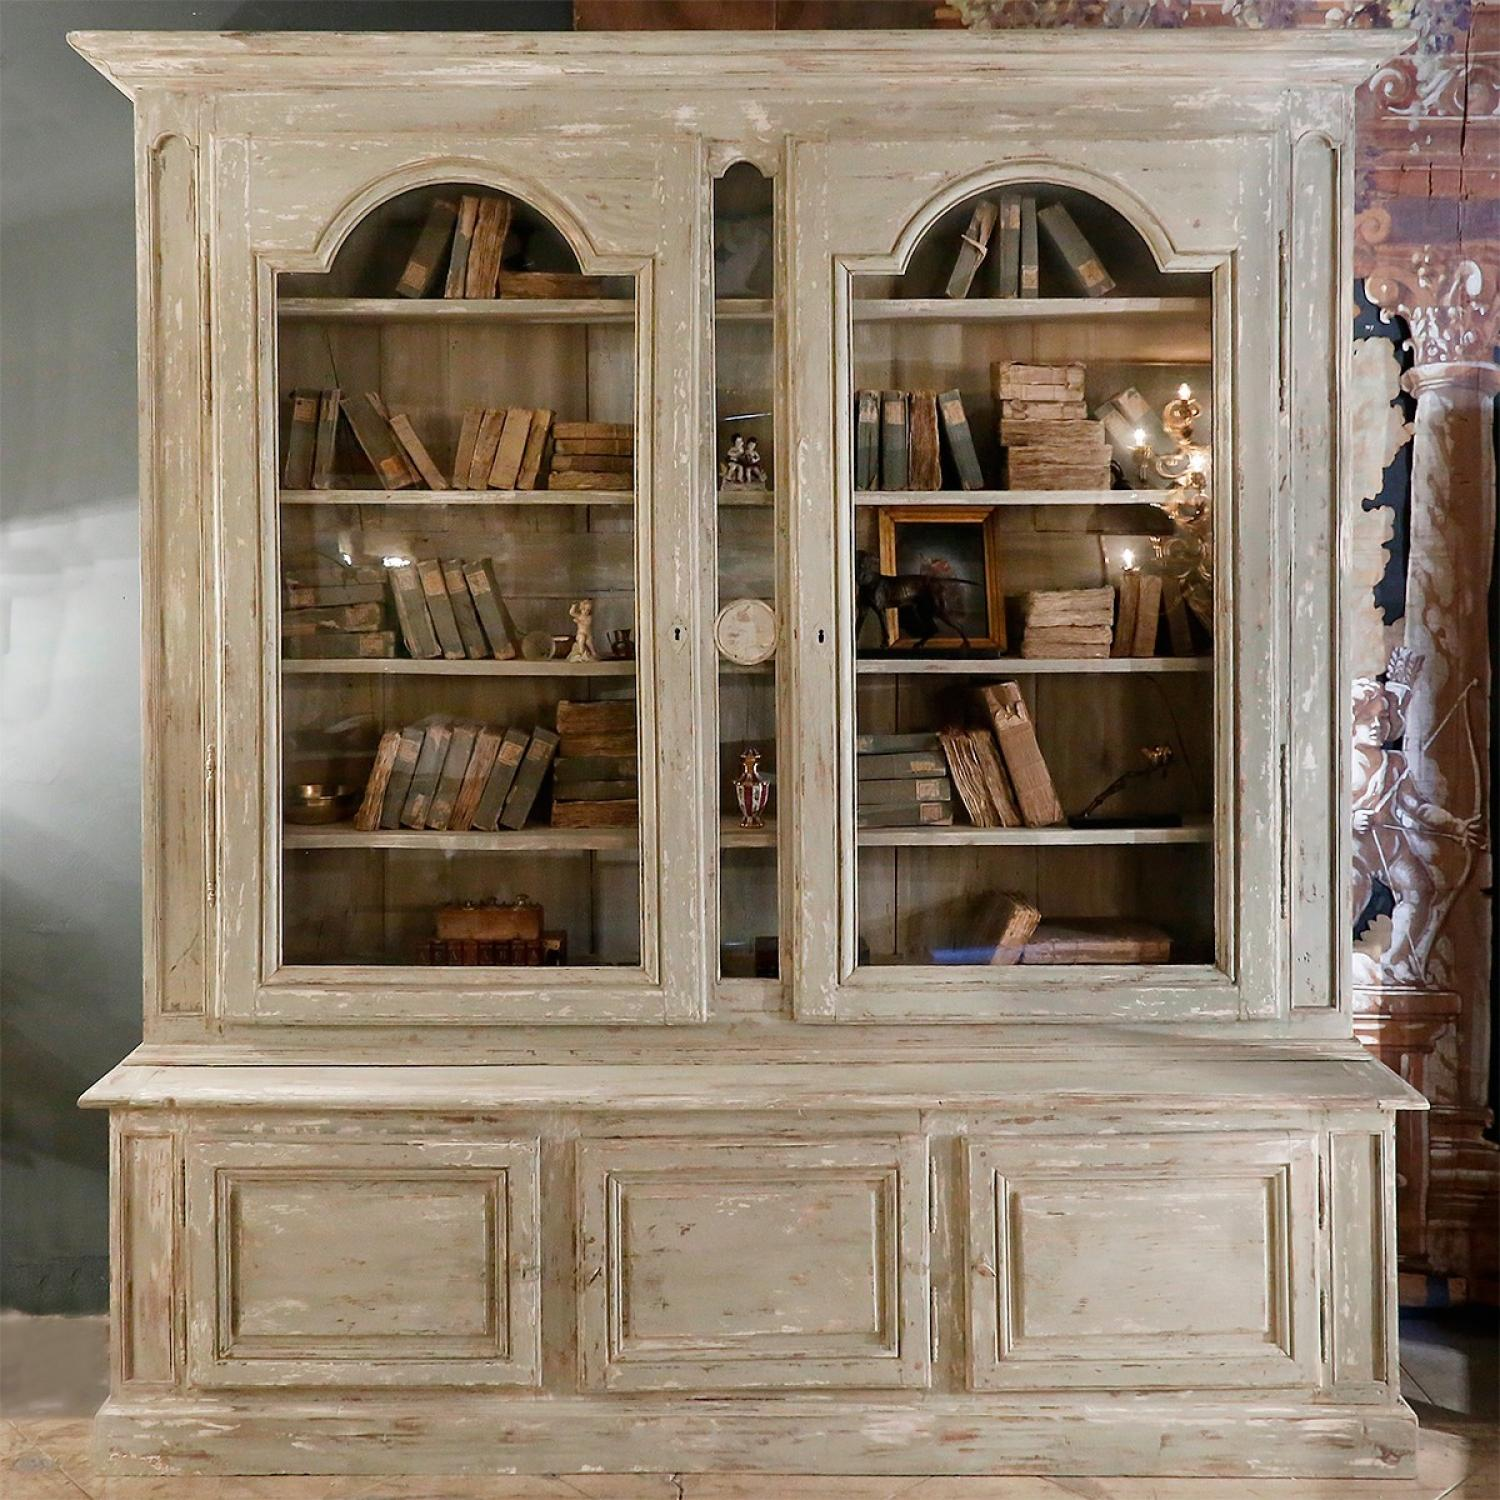 REMARKABLE 18TH CENTURY BIBLIOTHEQUE IN ORIGINAL PAINT